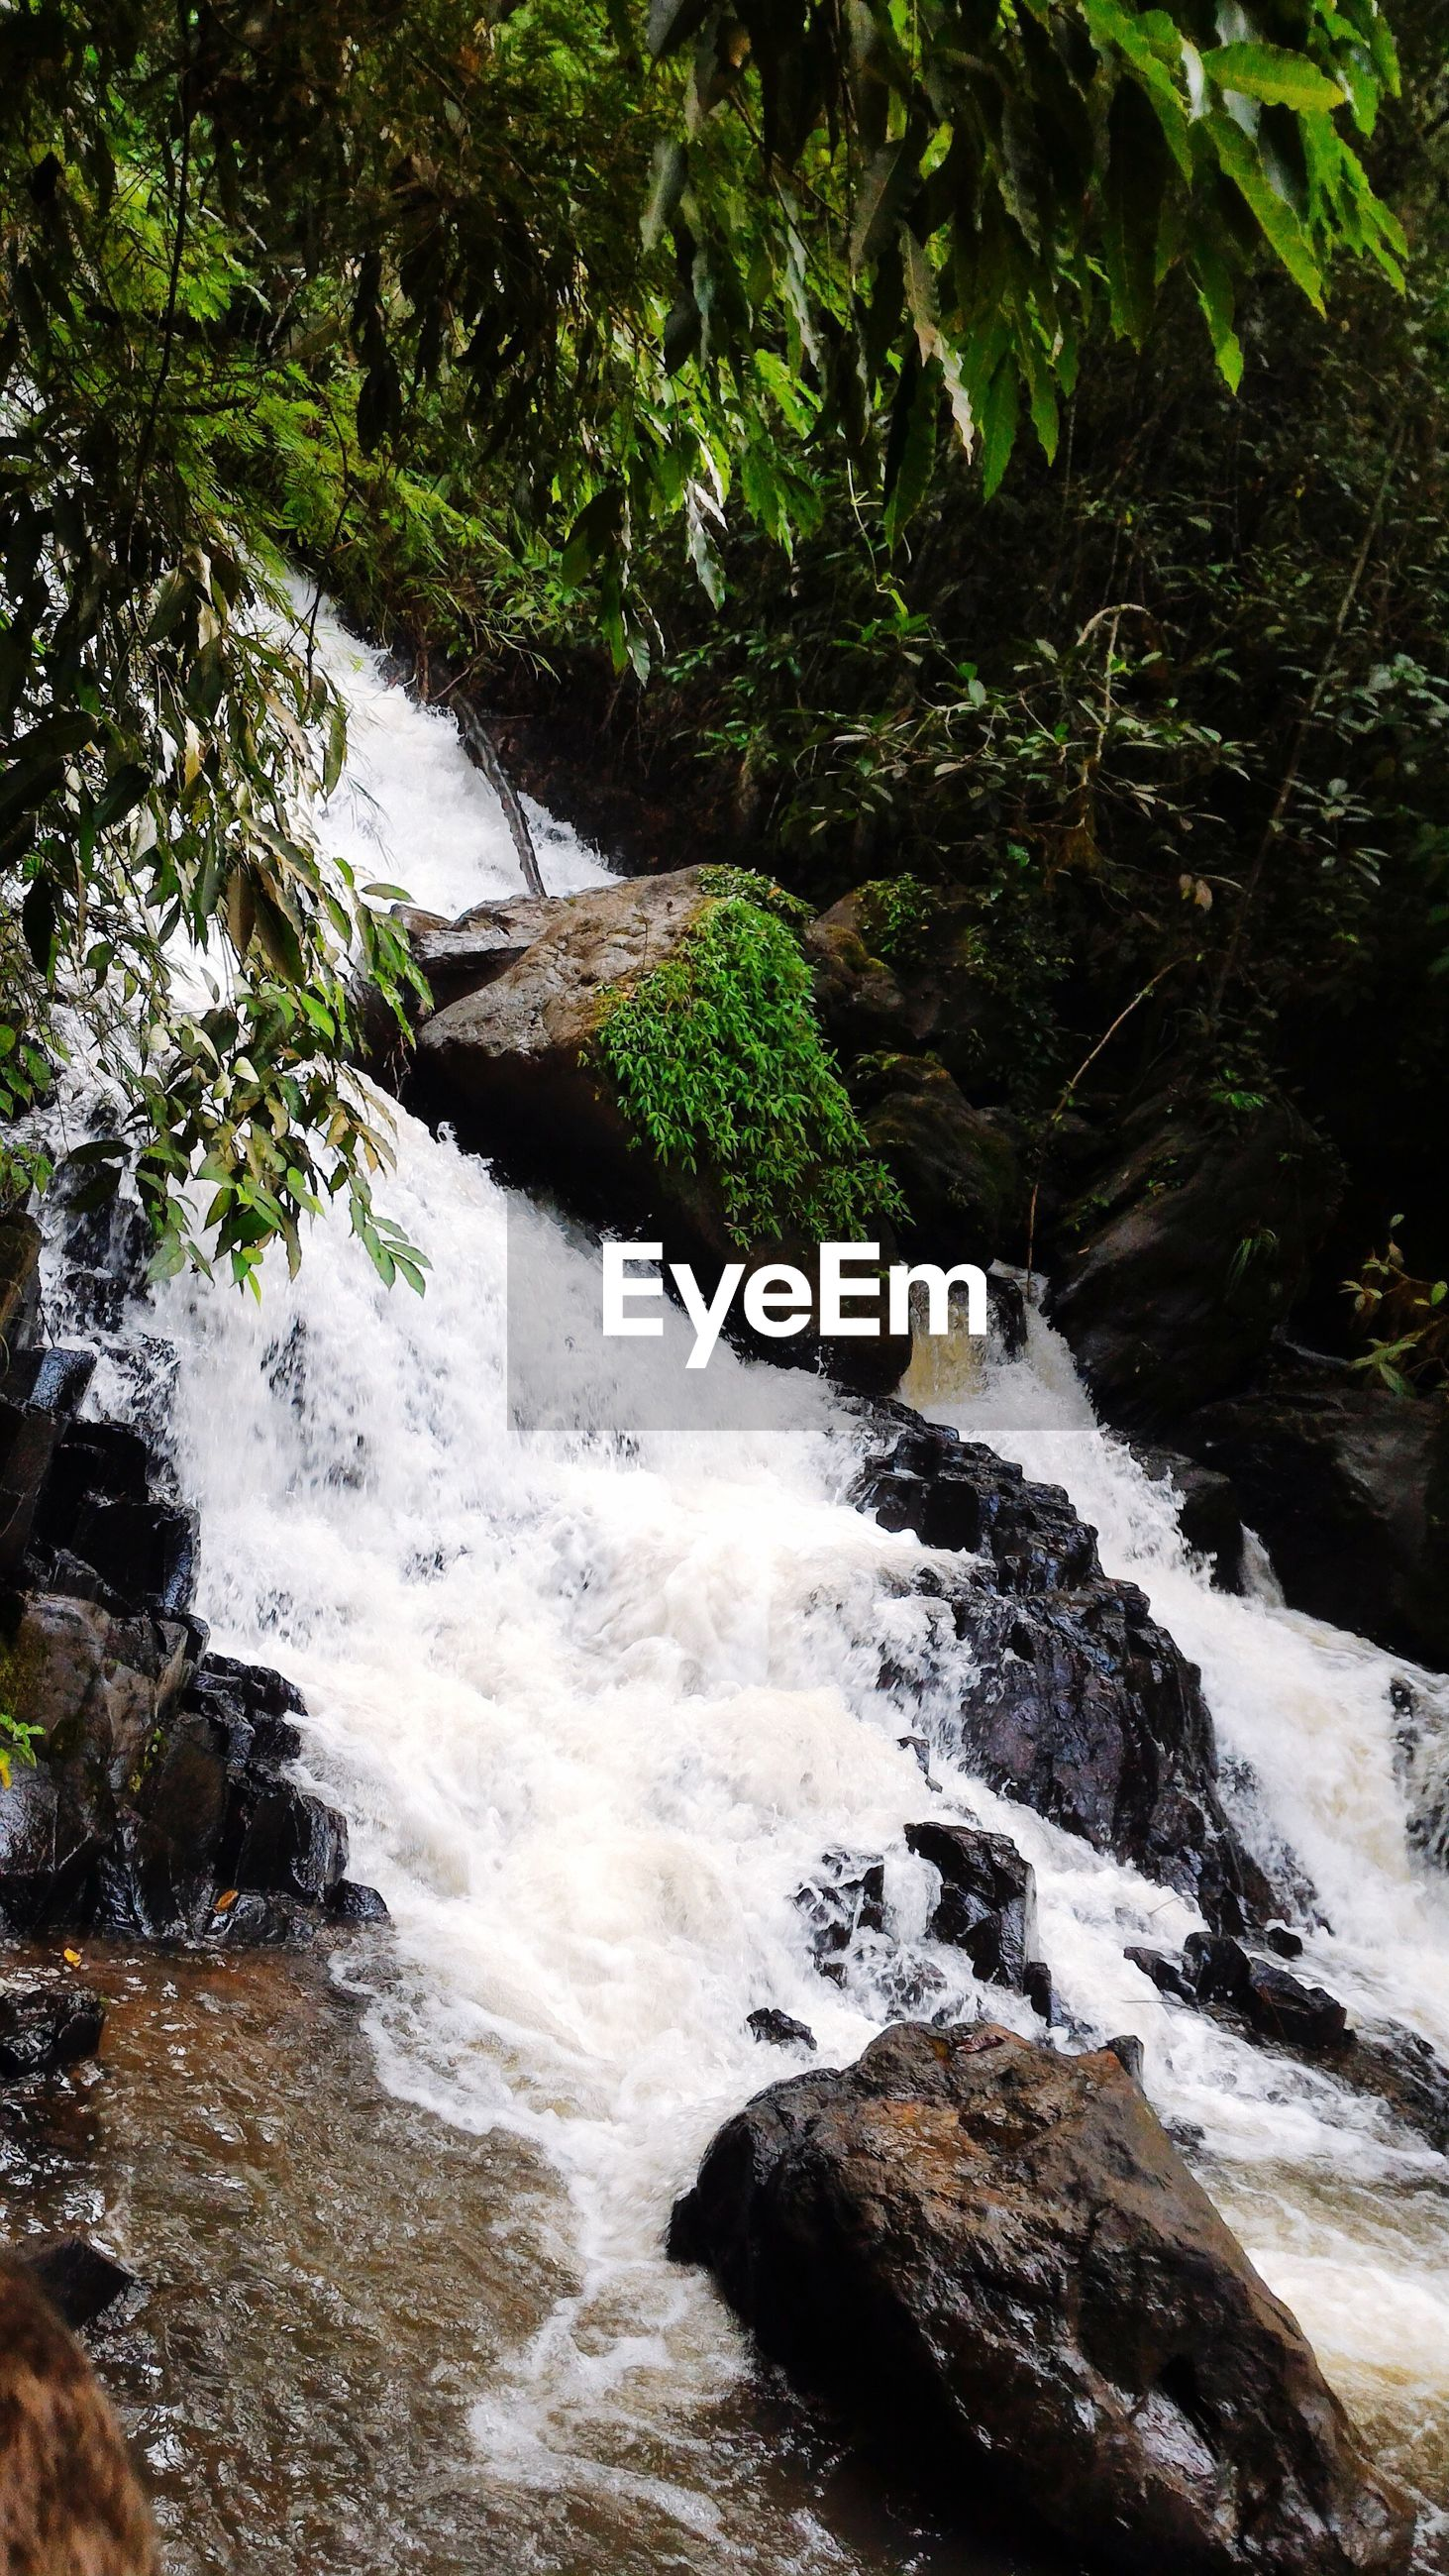 SCENIC VIEW OF WATER FLOWING IN FOREST